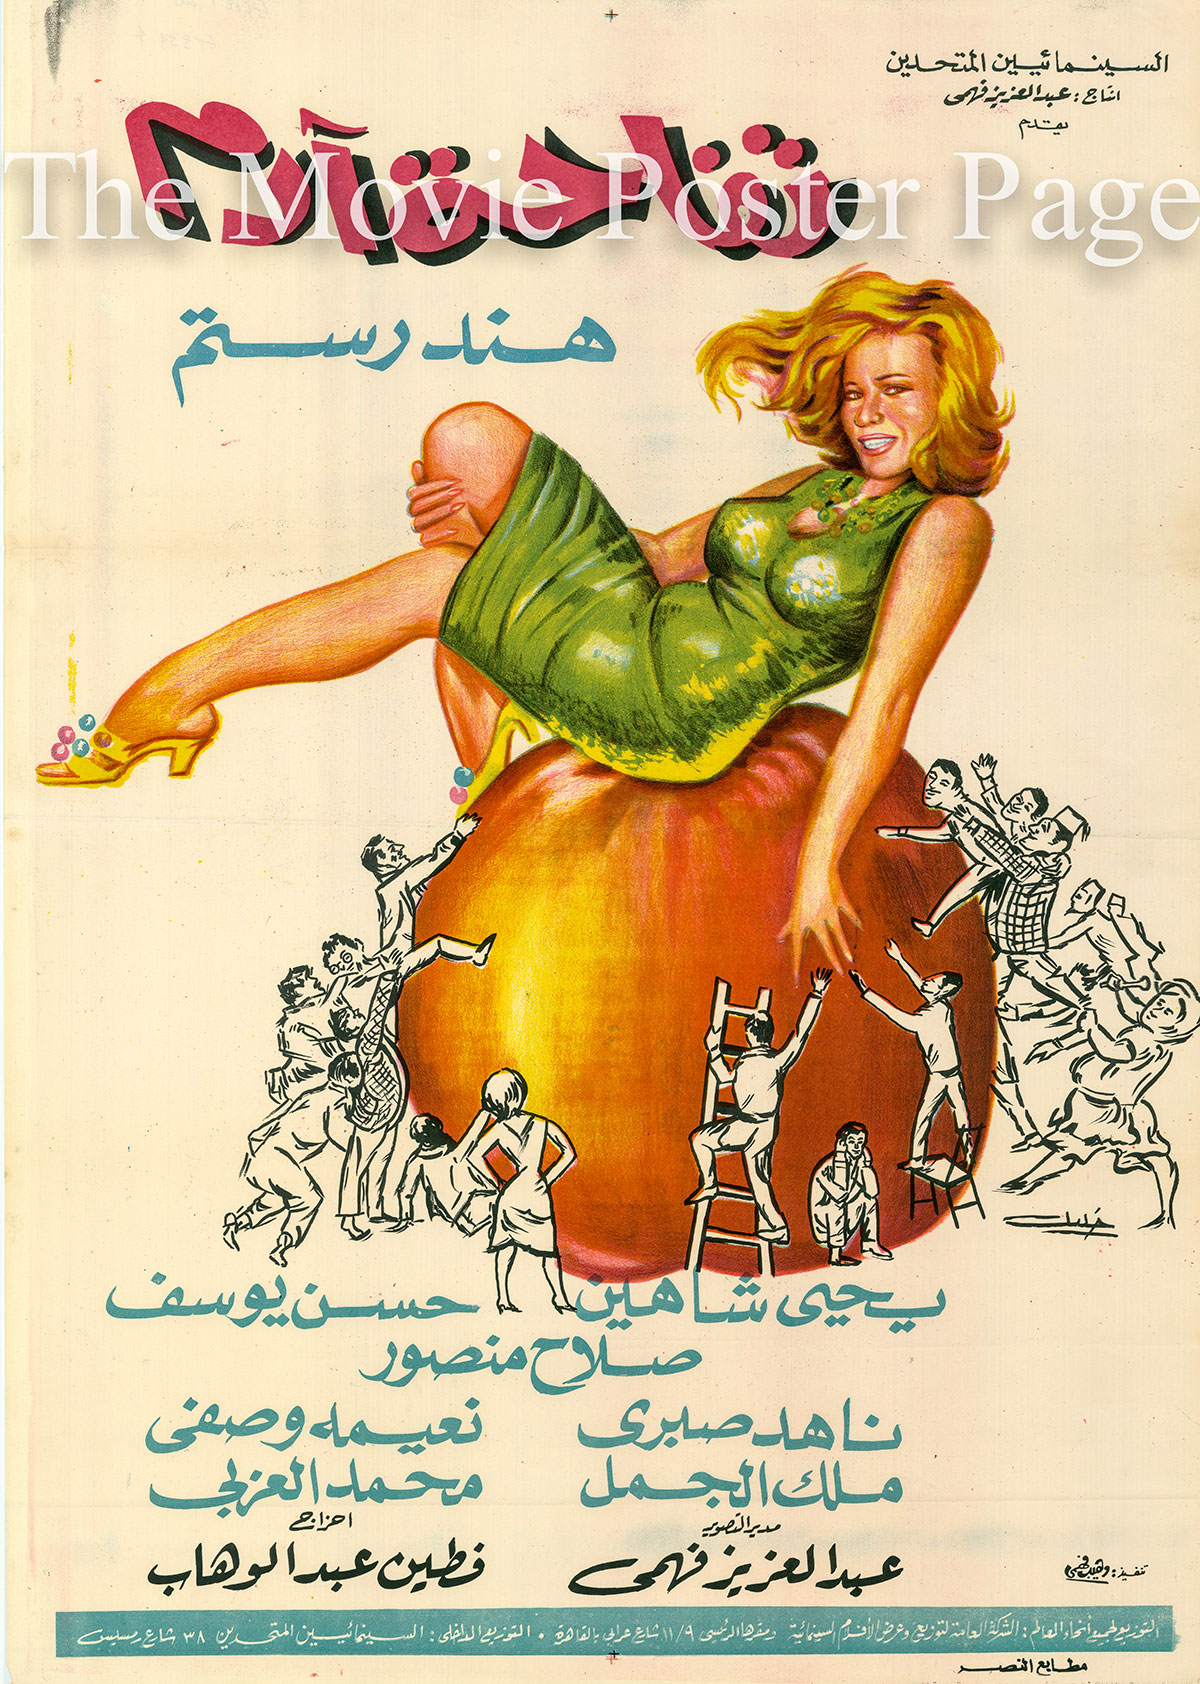 Pictured is an Egyptian promotional poster for the 1966 Fatin Abdel Wahab film Apple of their Eye starring Hind Rostom and Yehia Chahine.